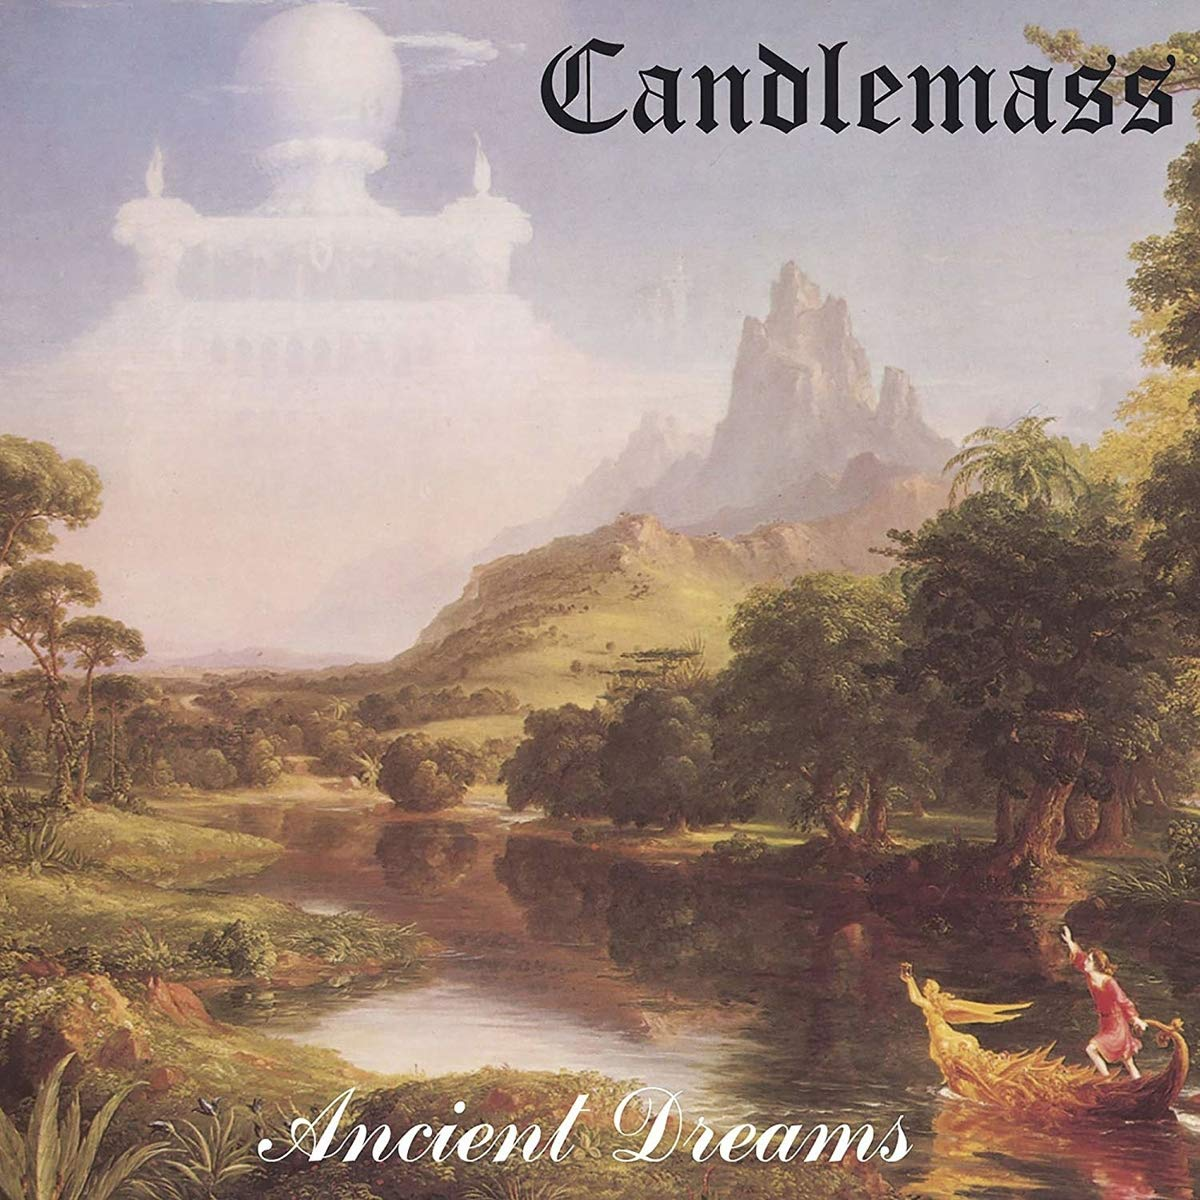 Candlemass - Ancient Dreams (2018) [FLAC] Download